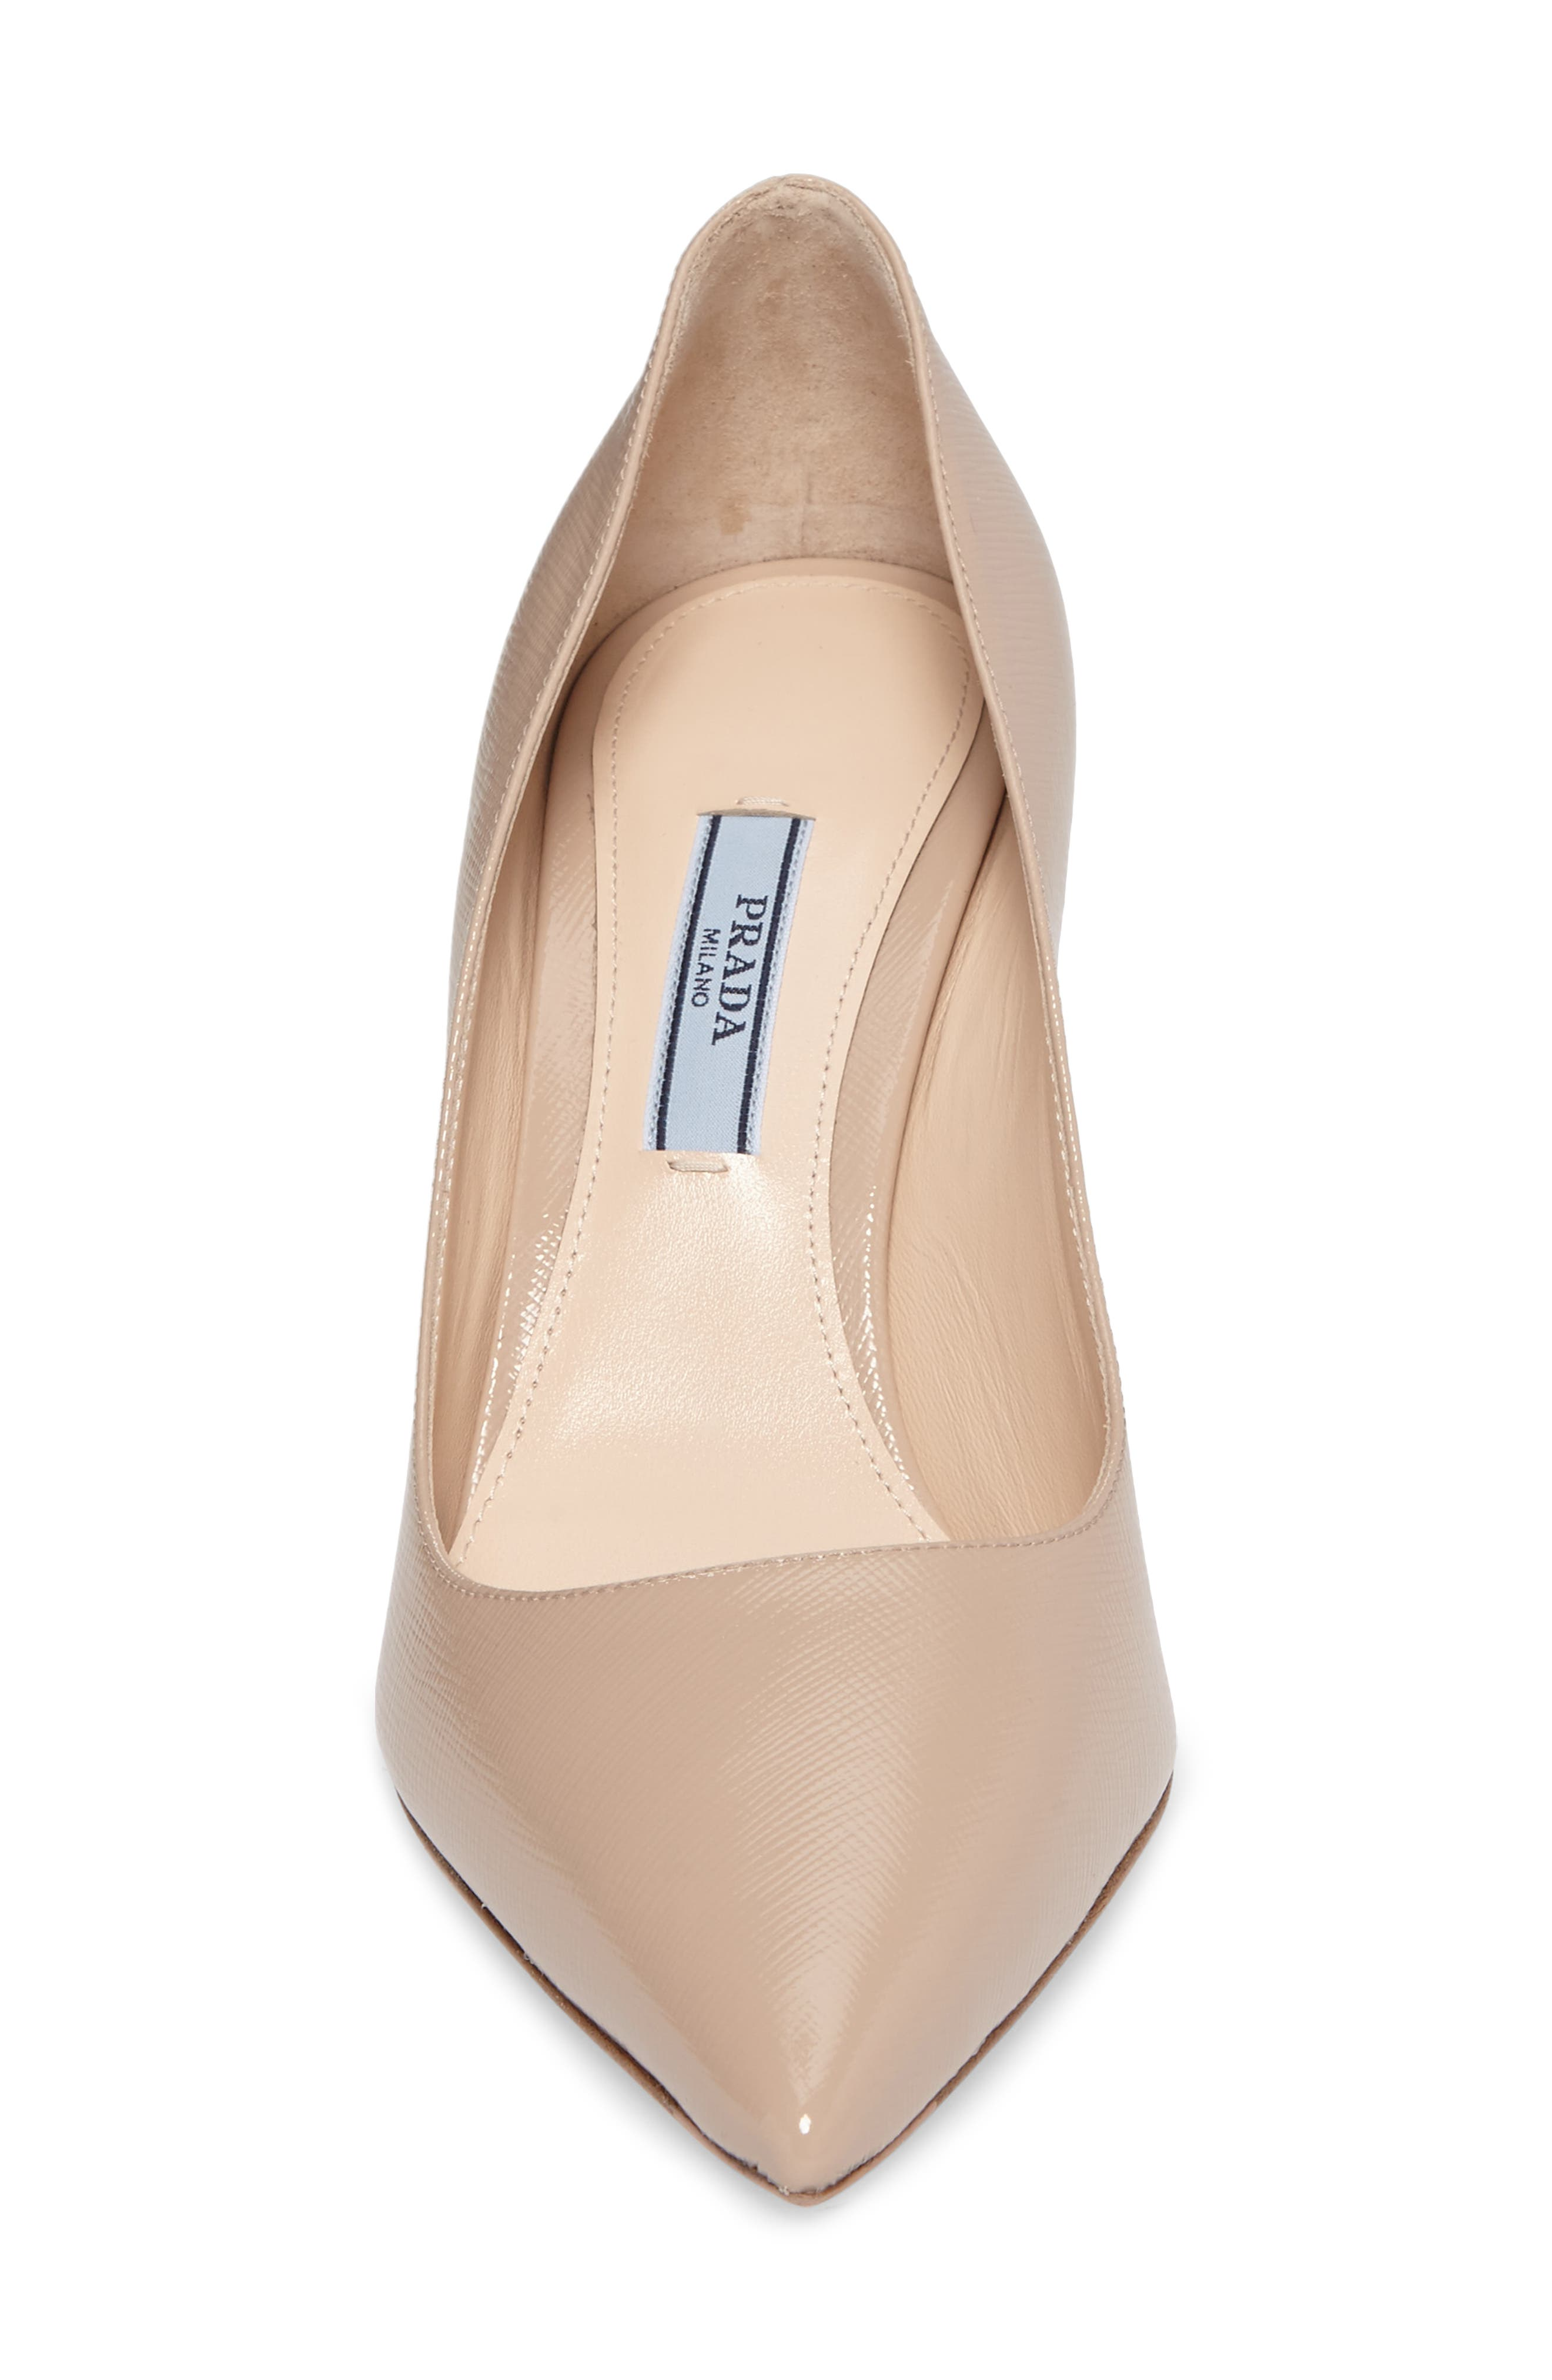 Pointy Toe Pump,                             Alternate thumbnail 5, color,                             Cipria